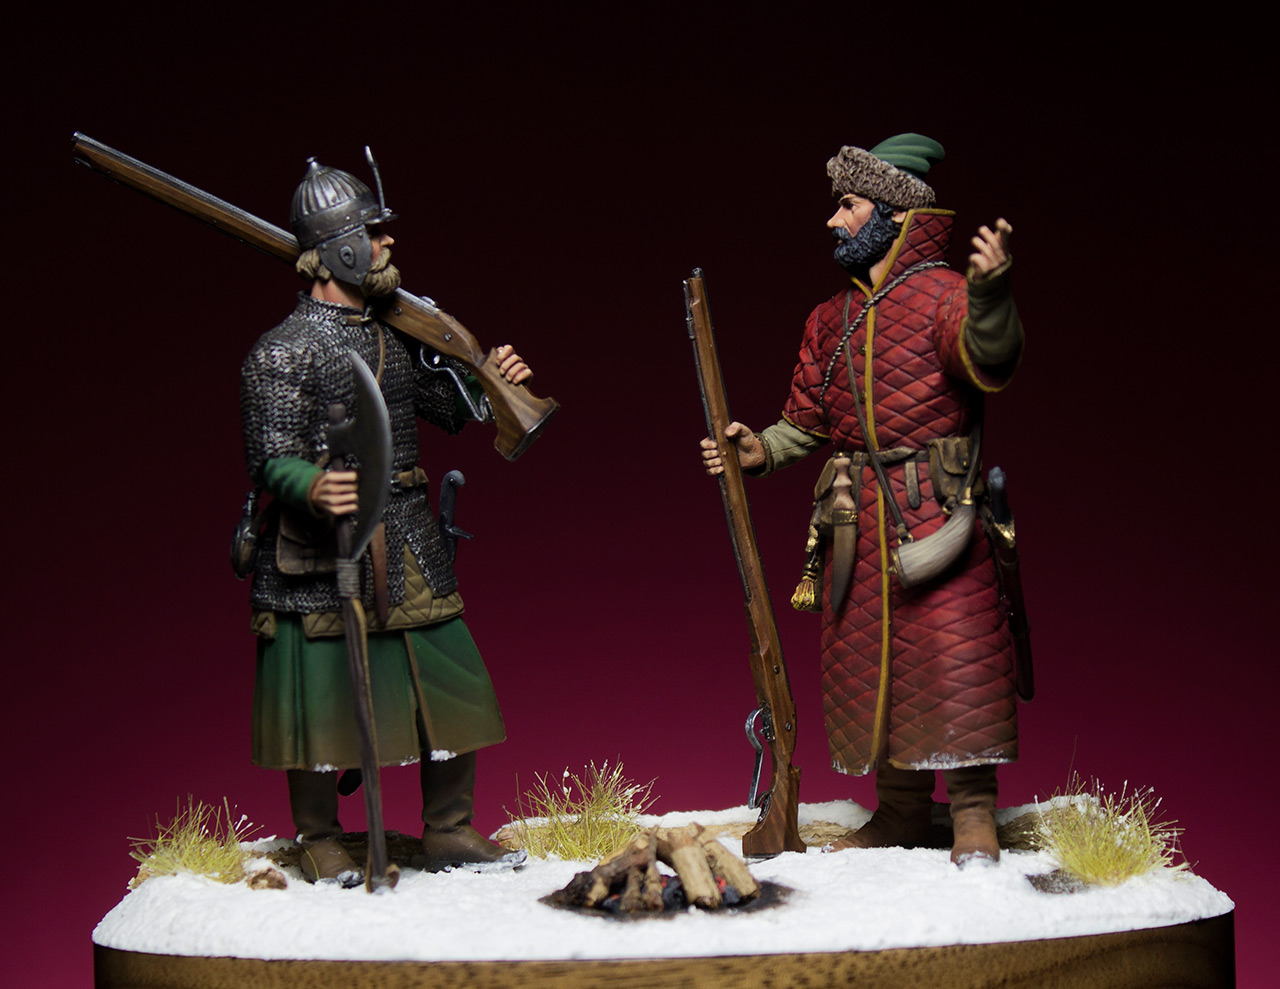 Figures: Russian musketeers, photo #1